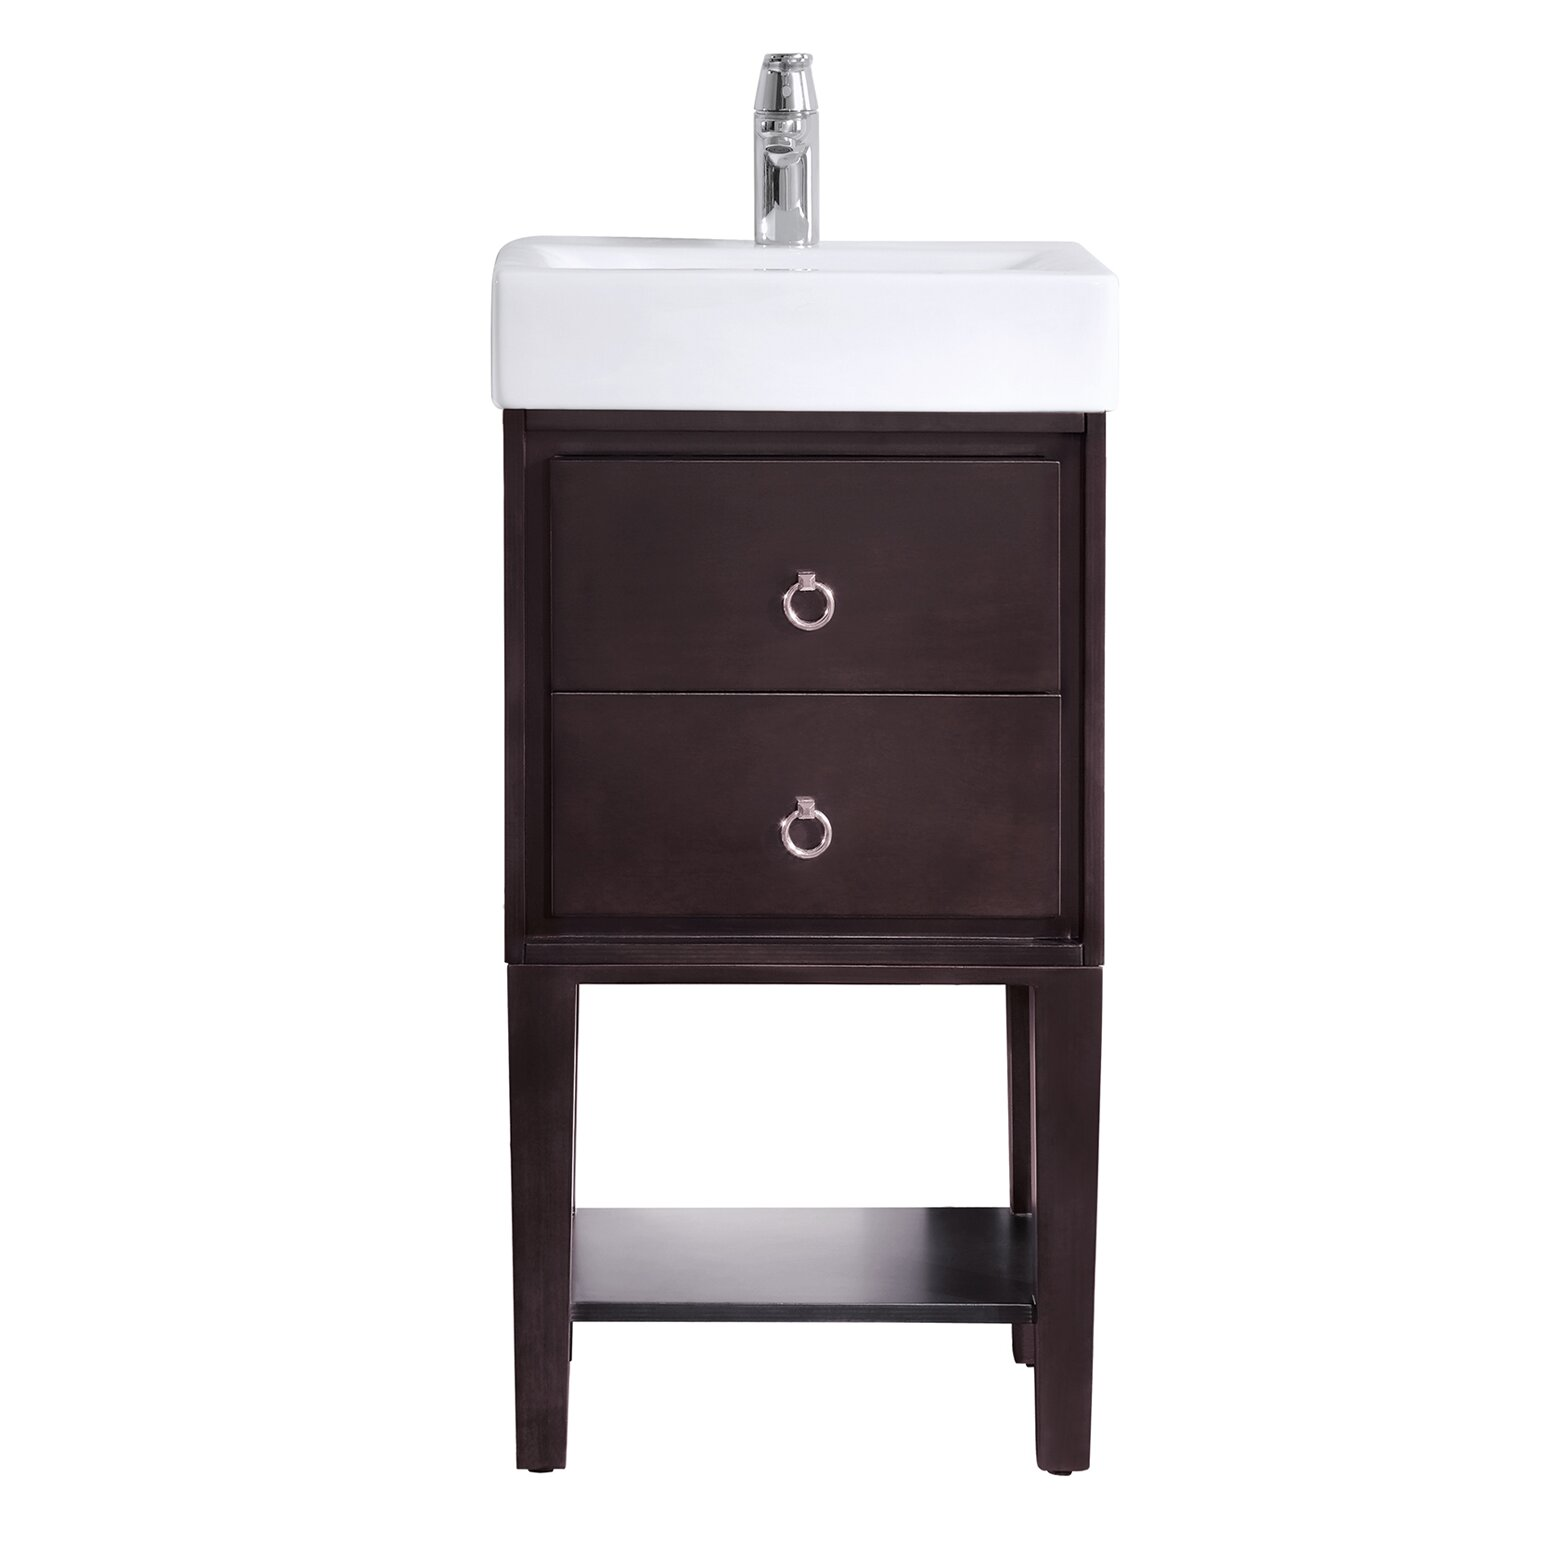 Avanity Kent 18 Single Modern Bathroom Vanity Set